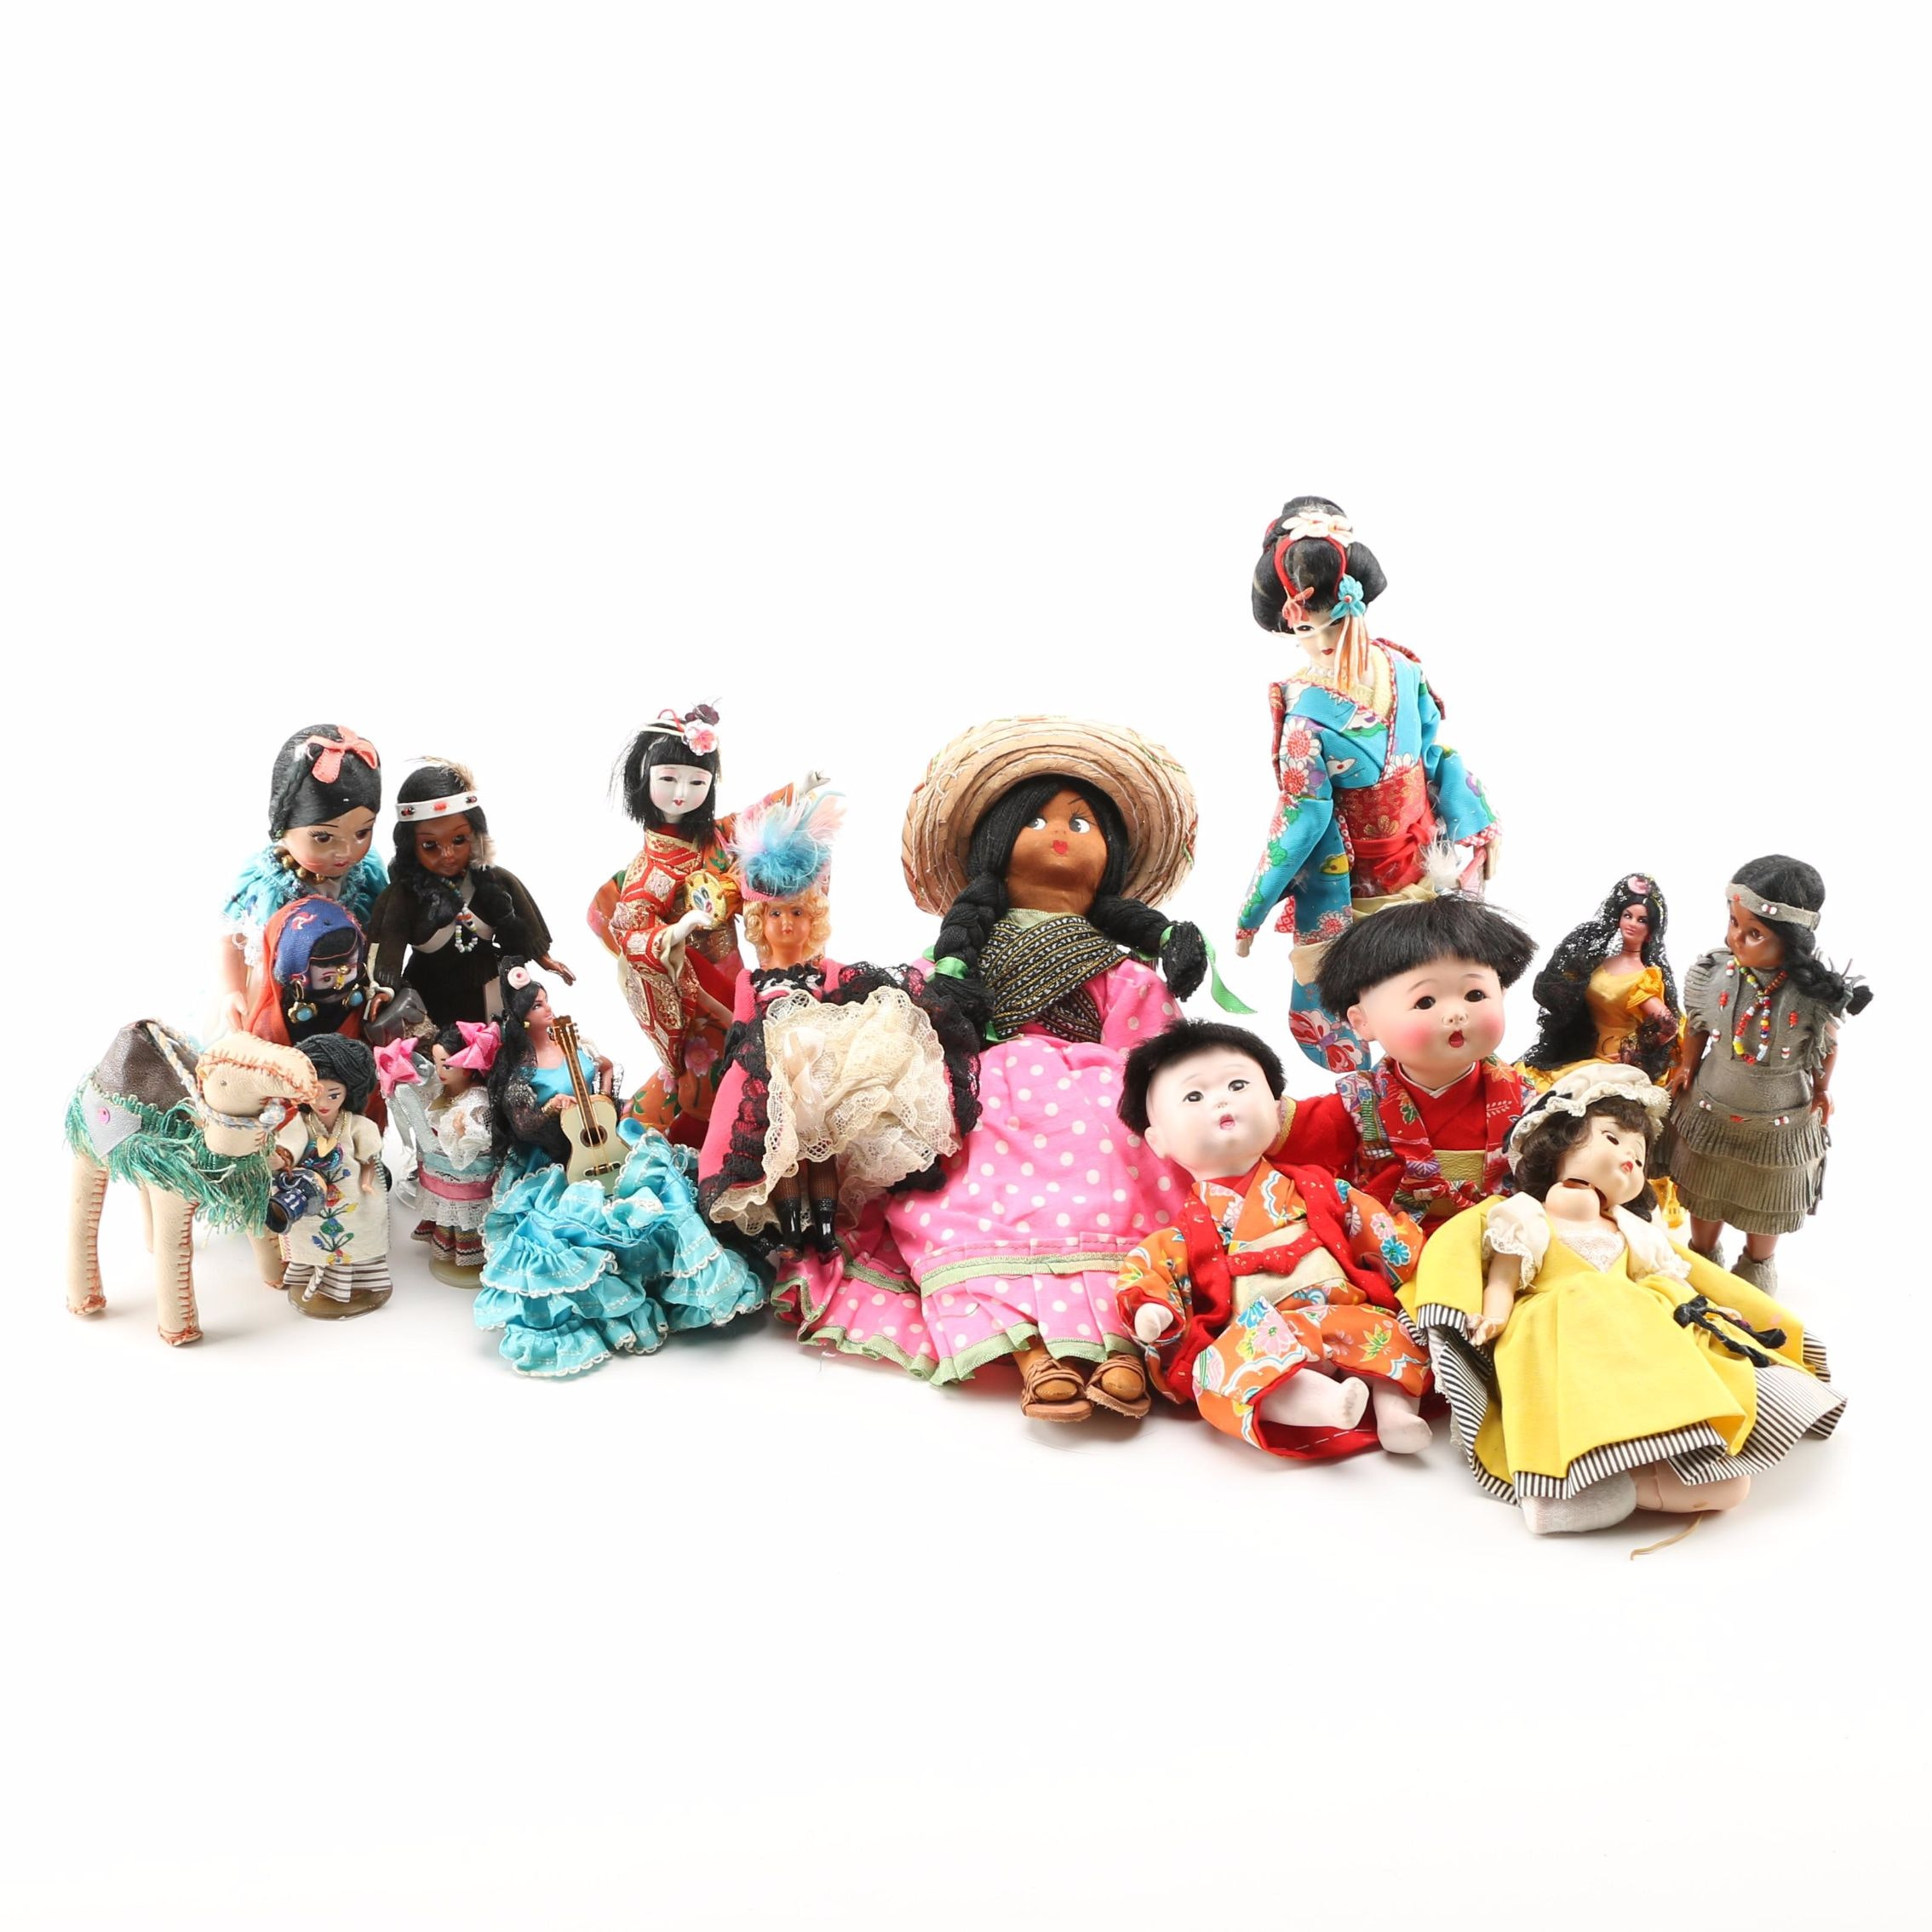 International Themed Dolls and Stuffed Toy